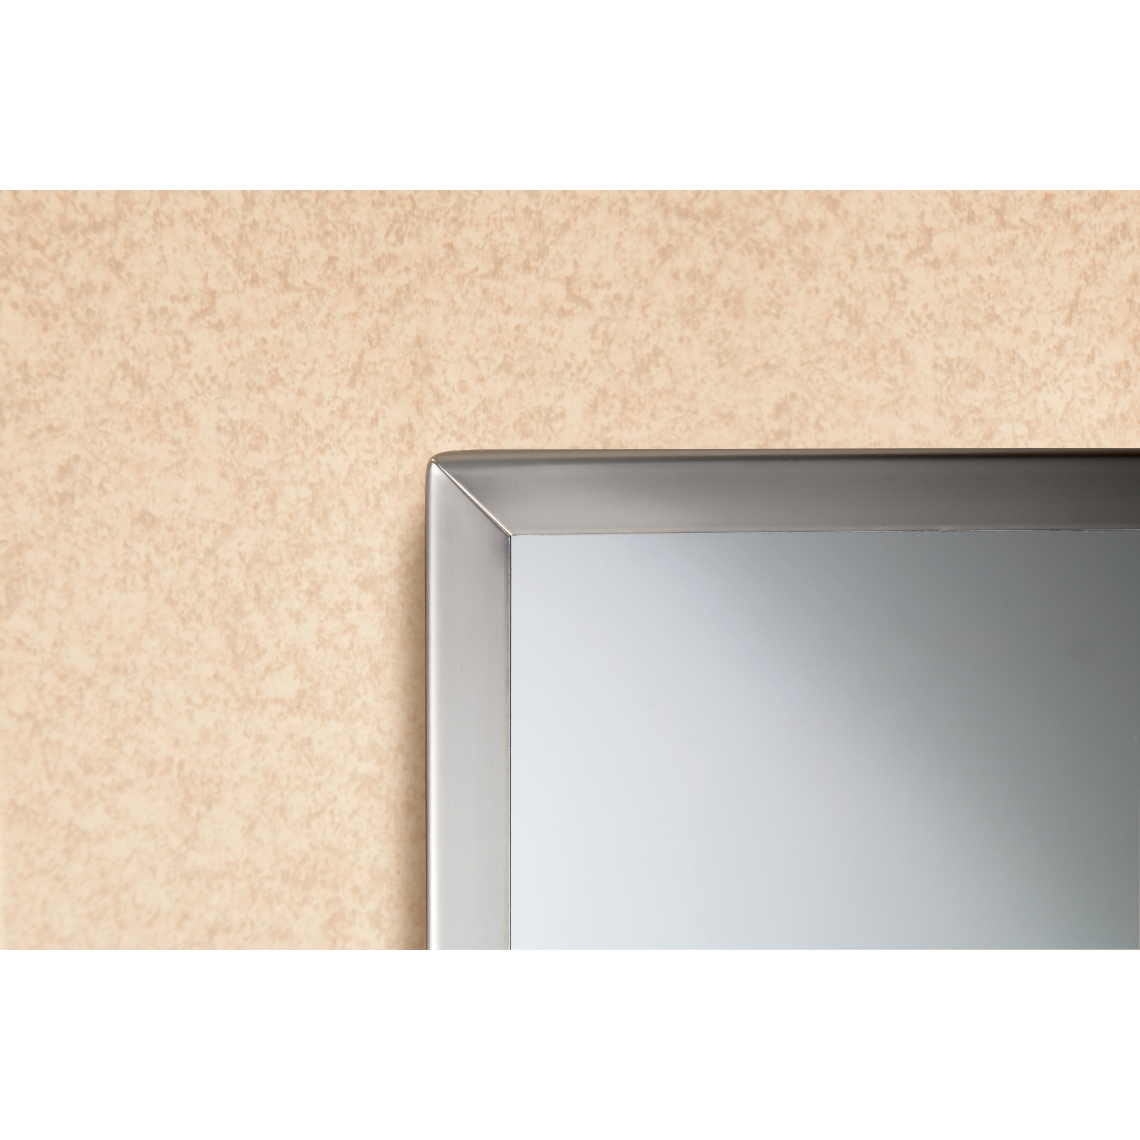 1658 Tempered Glass Channel Frame Mirror